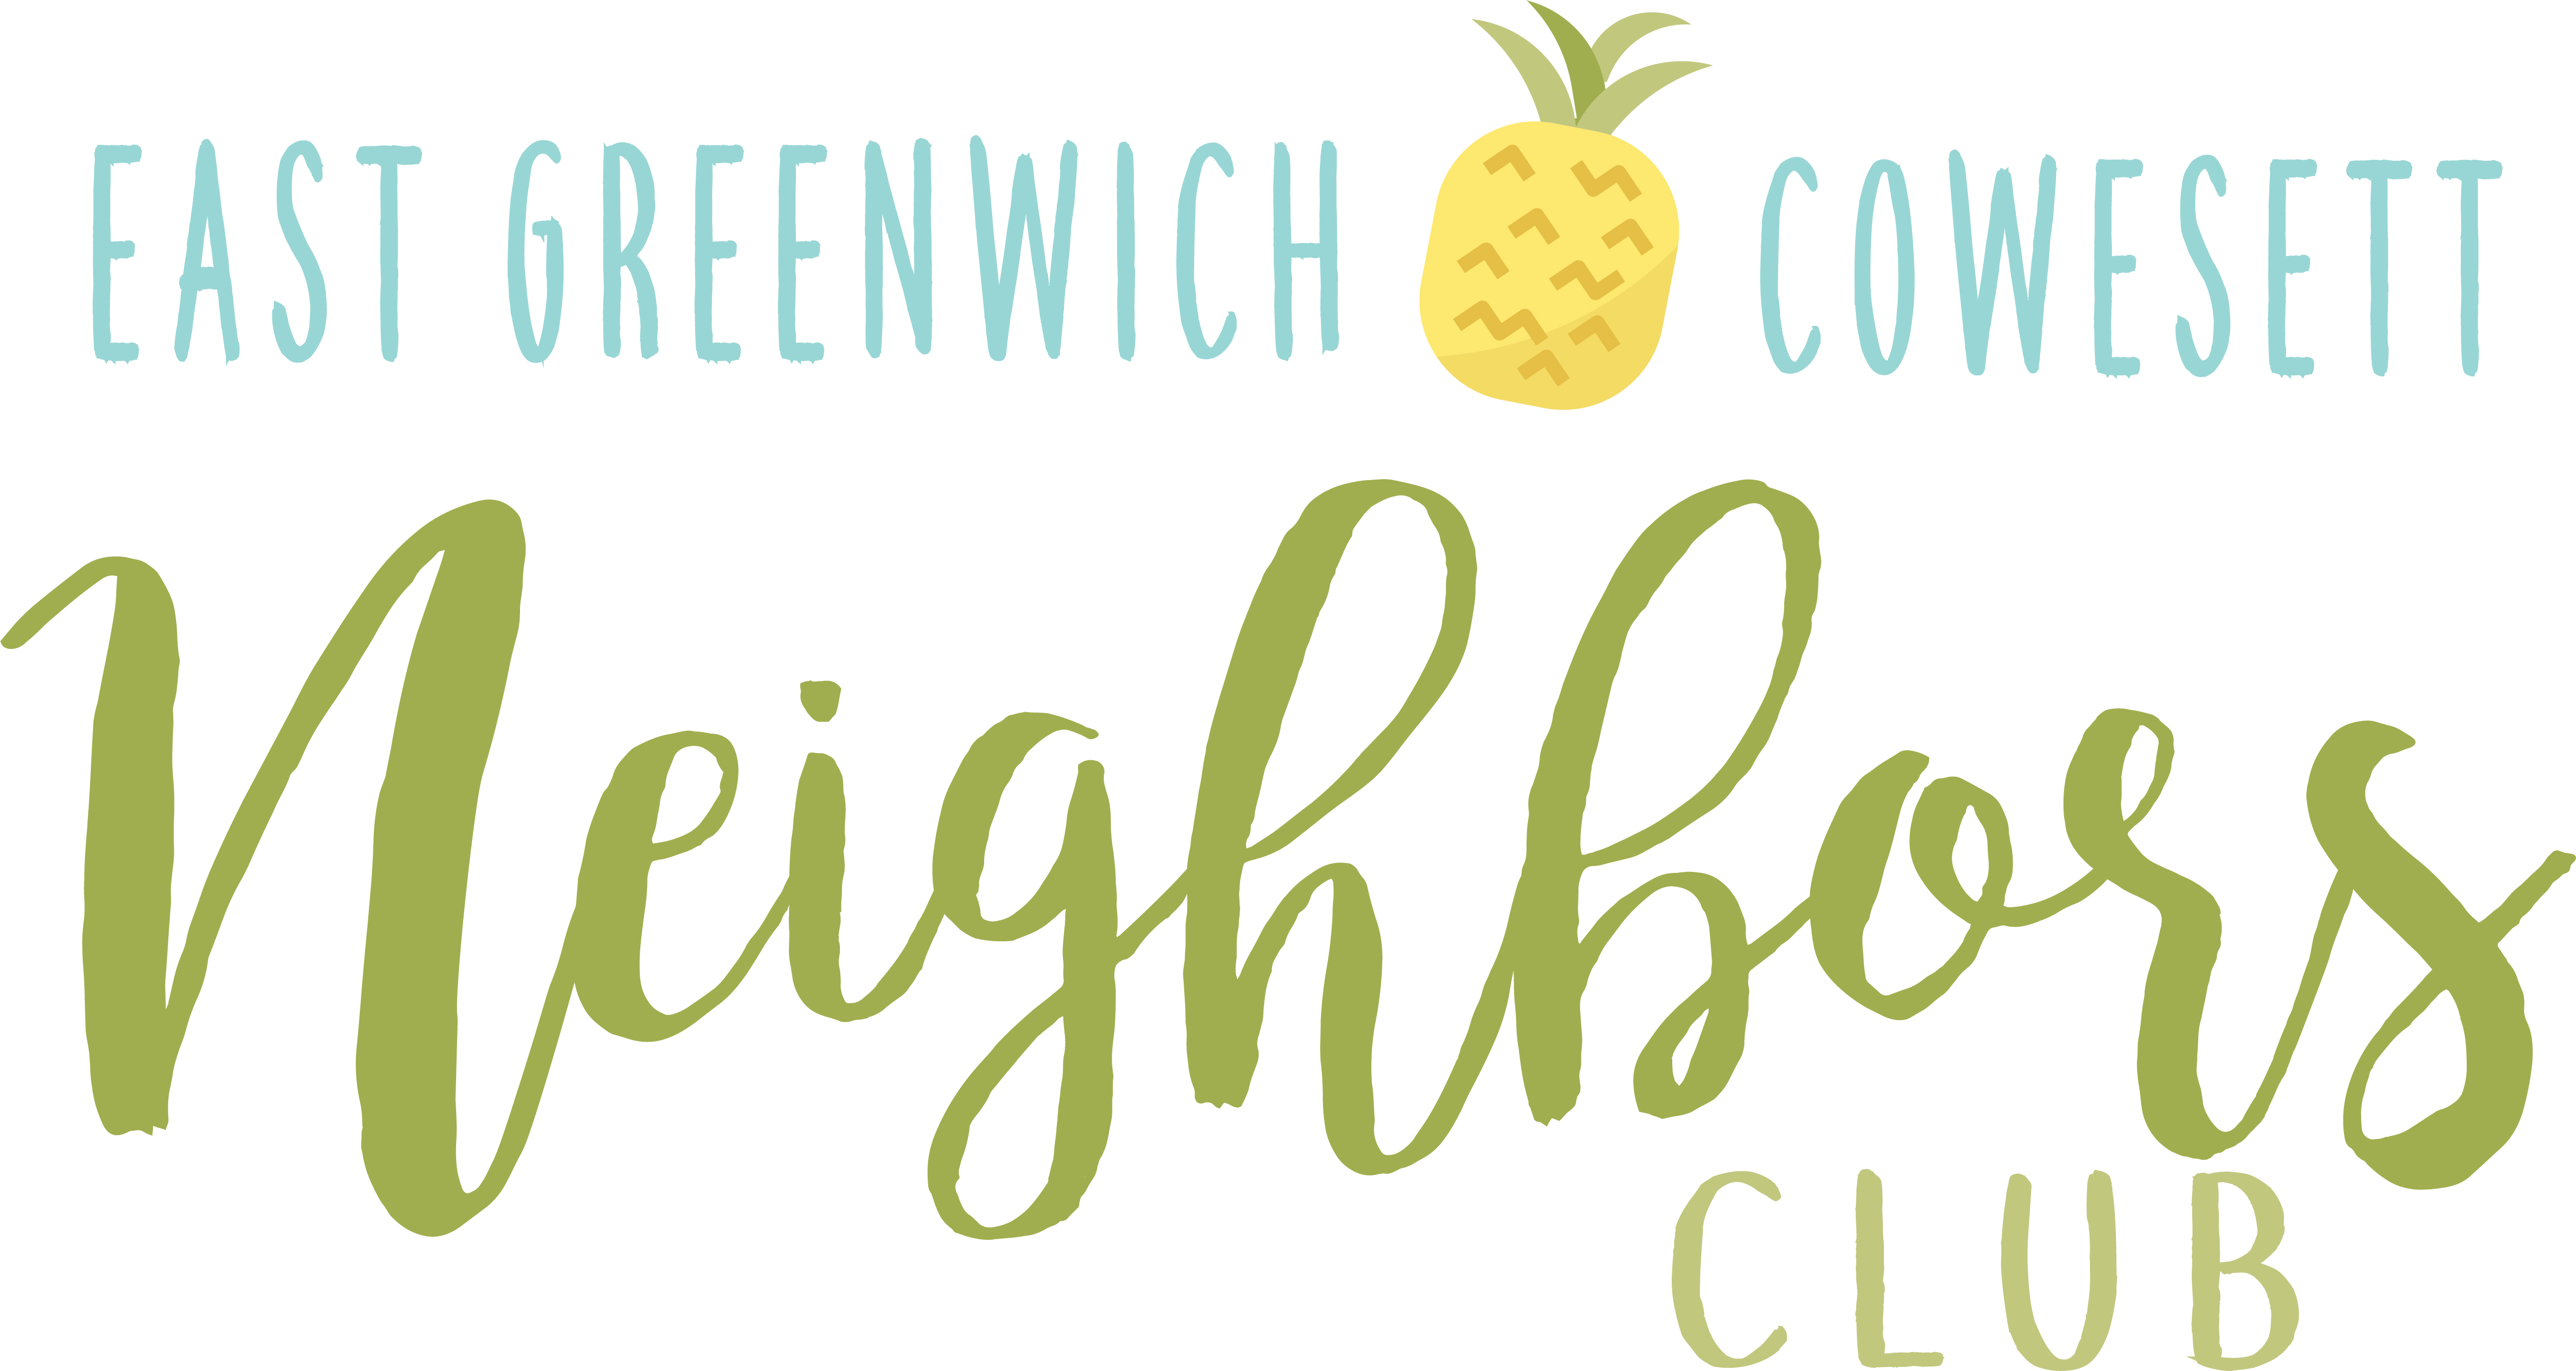 Logo for East Greenwich-Cowesett Neighbors Club